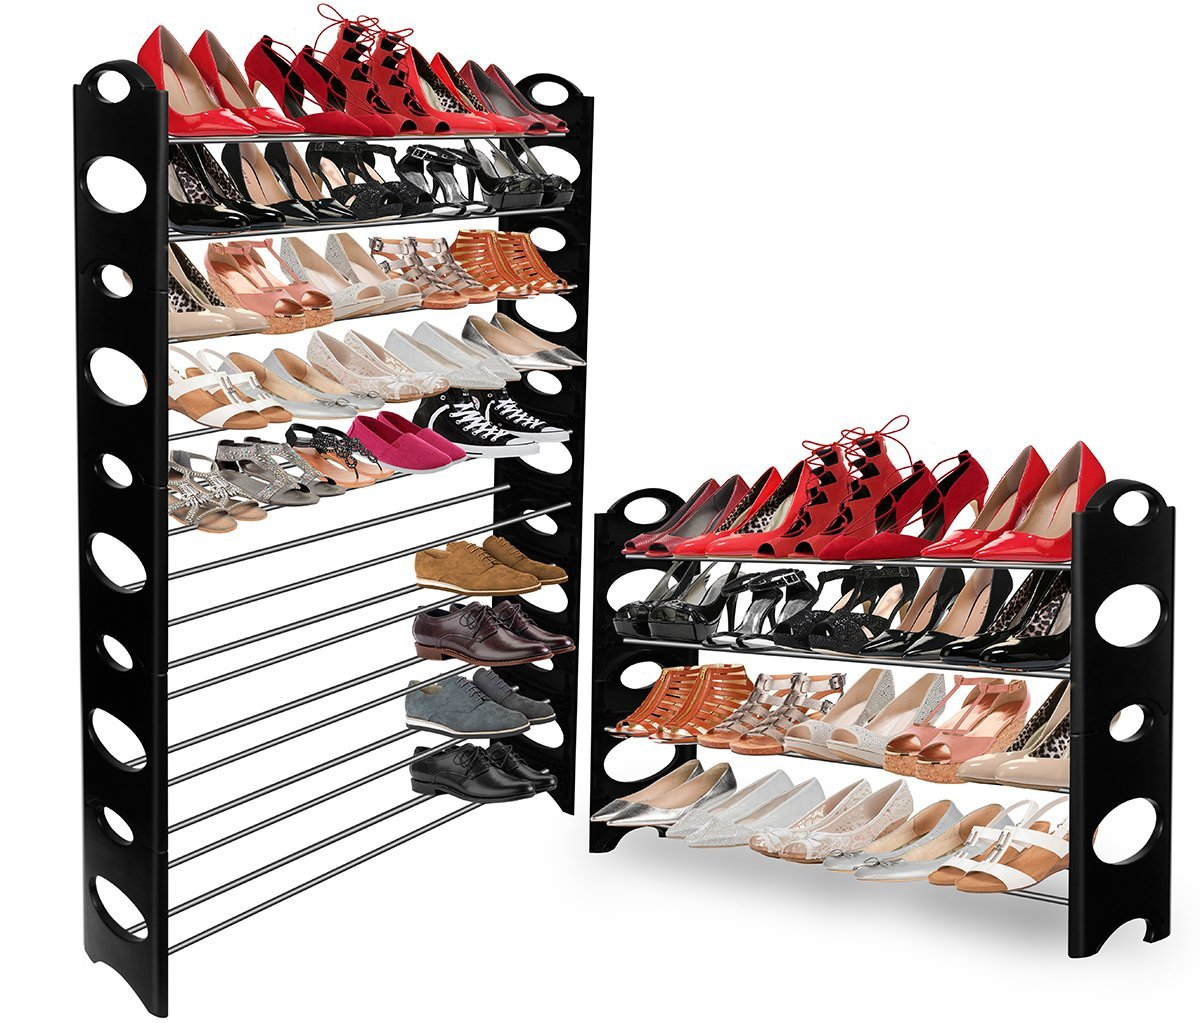 Top 10 Best Shoe Racks In 2015 Reviews